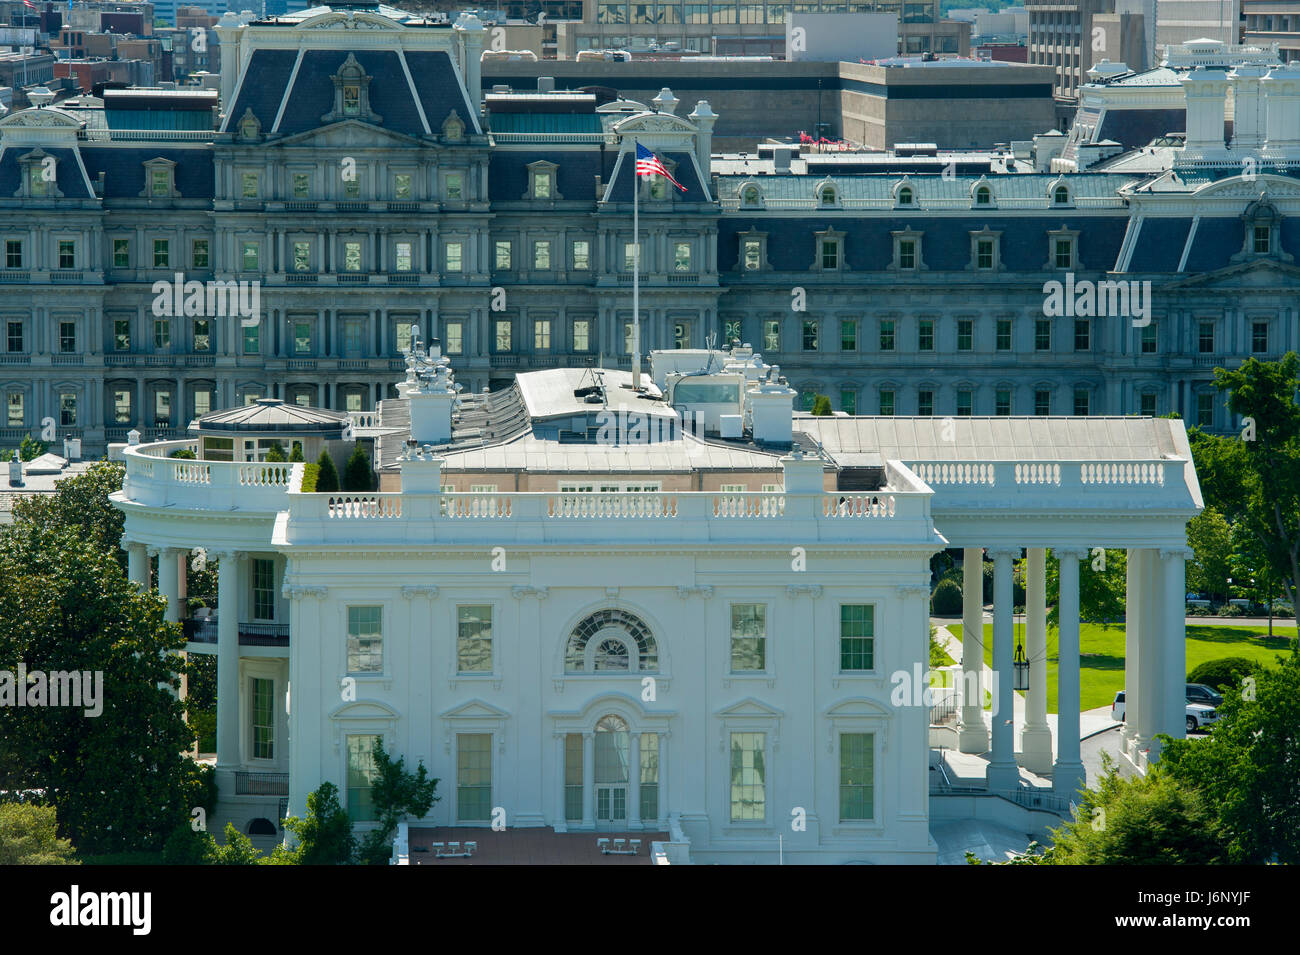 usa-washington-dc-the-white-house-east-view-looking-towards-the-old-J6NYJF.jpg